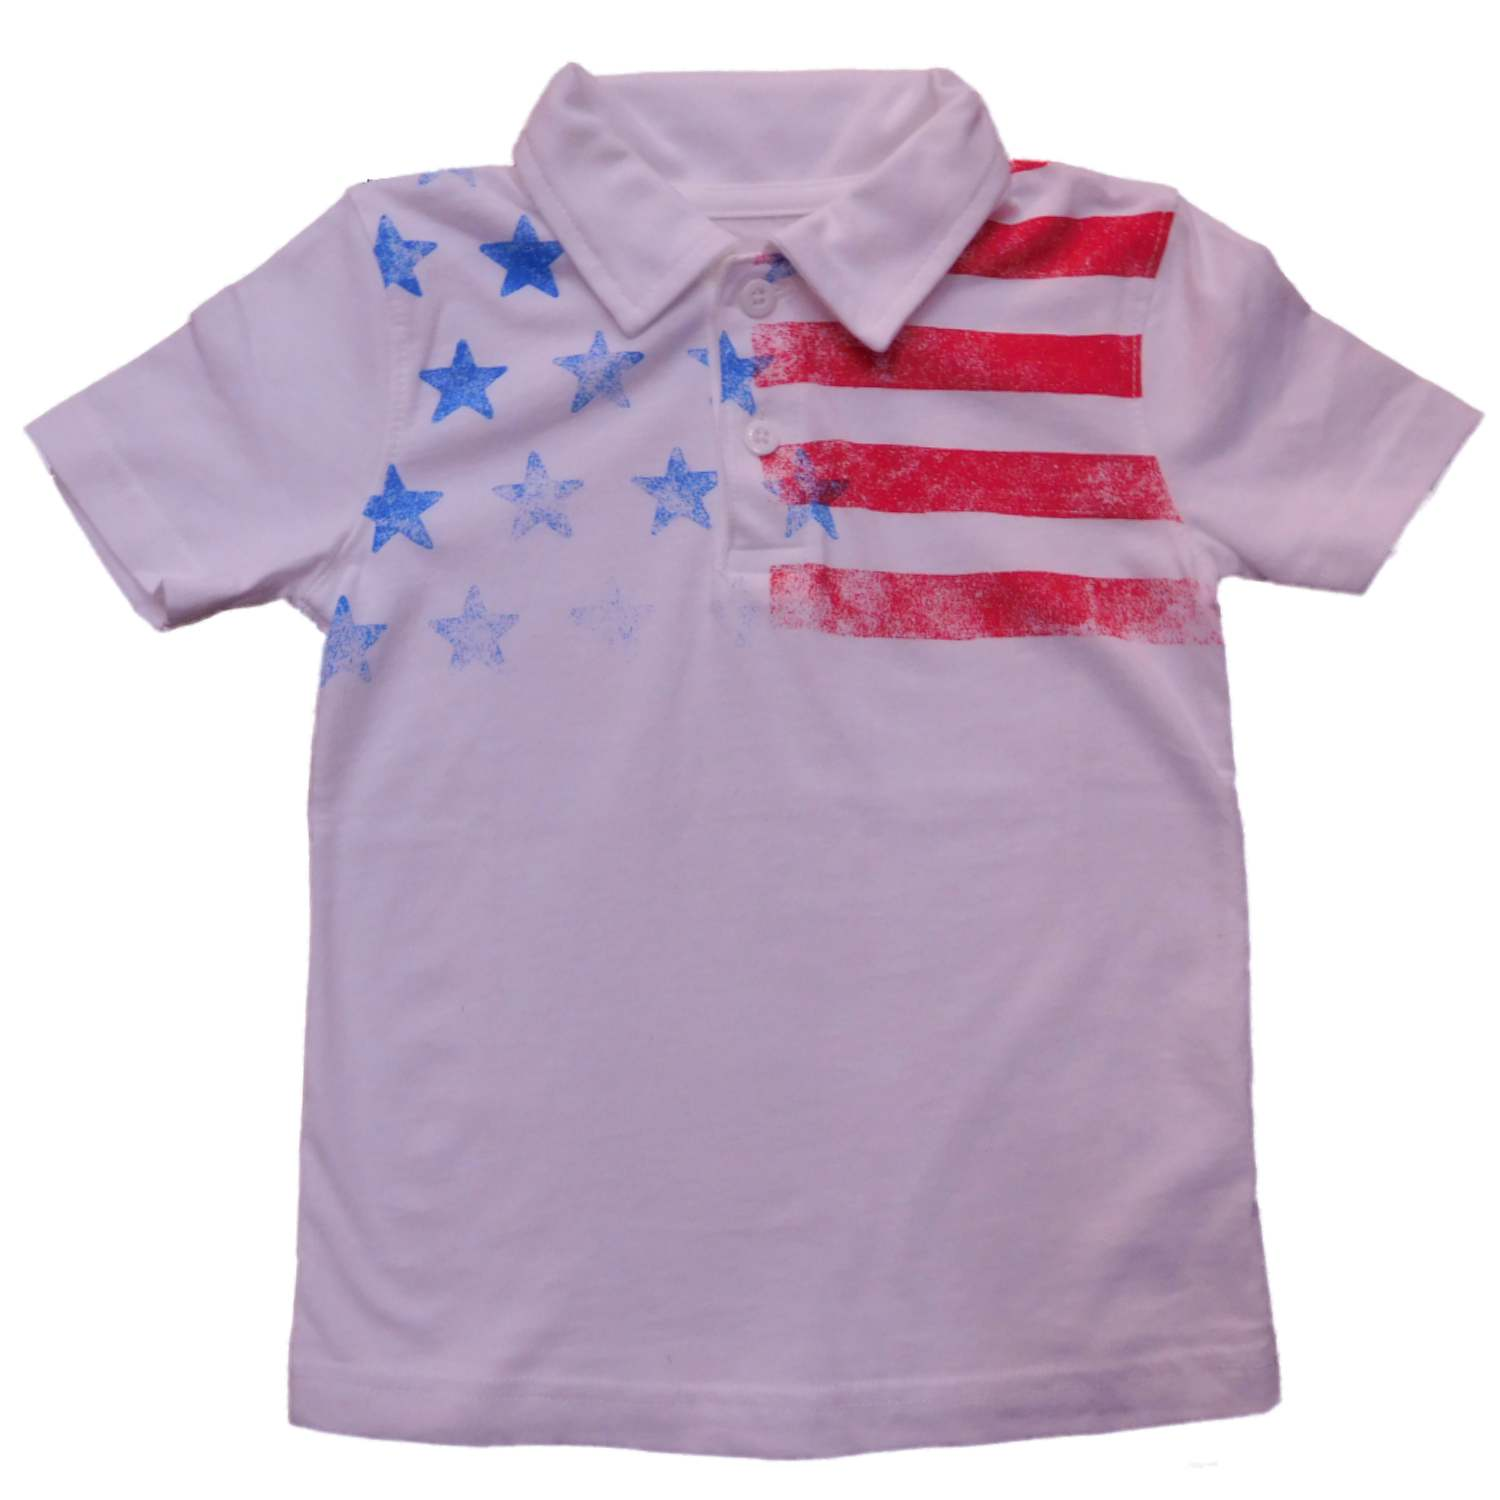 Jumping Beans Jumping Beans Toddler Boys White Patriotic Usa Us